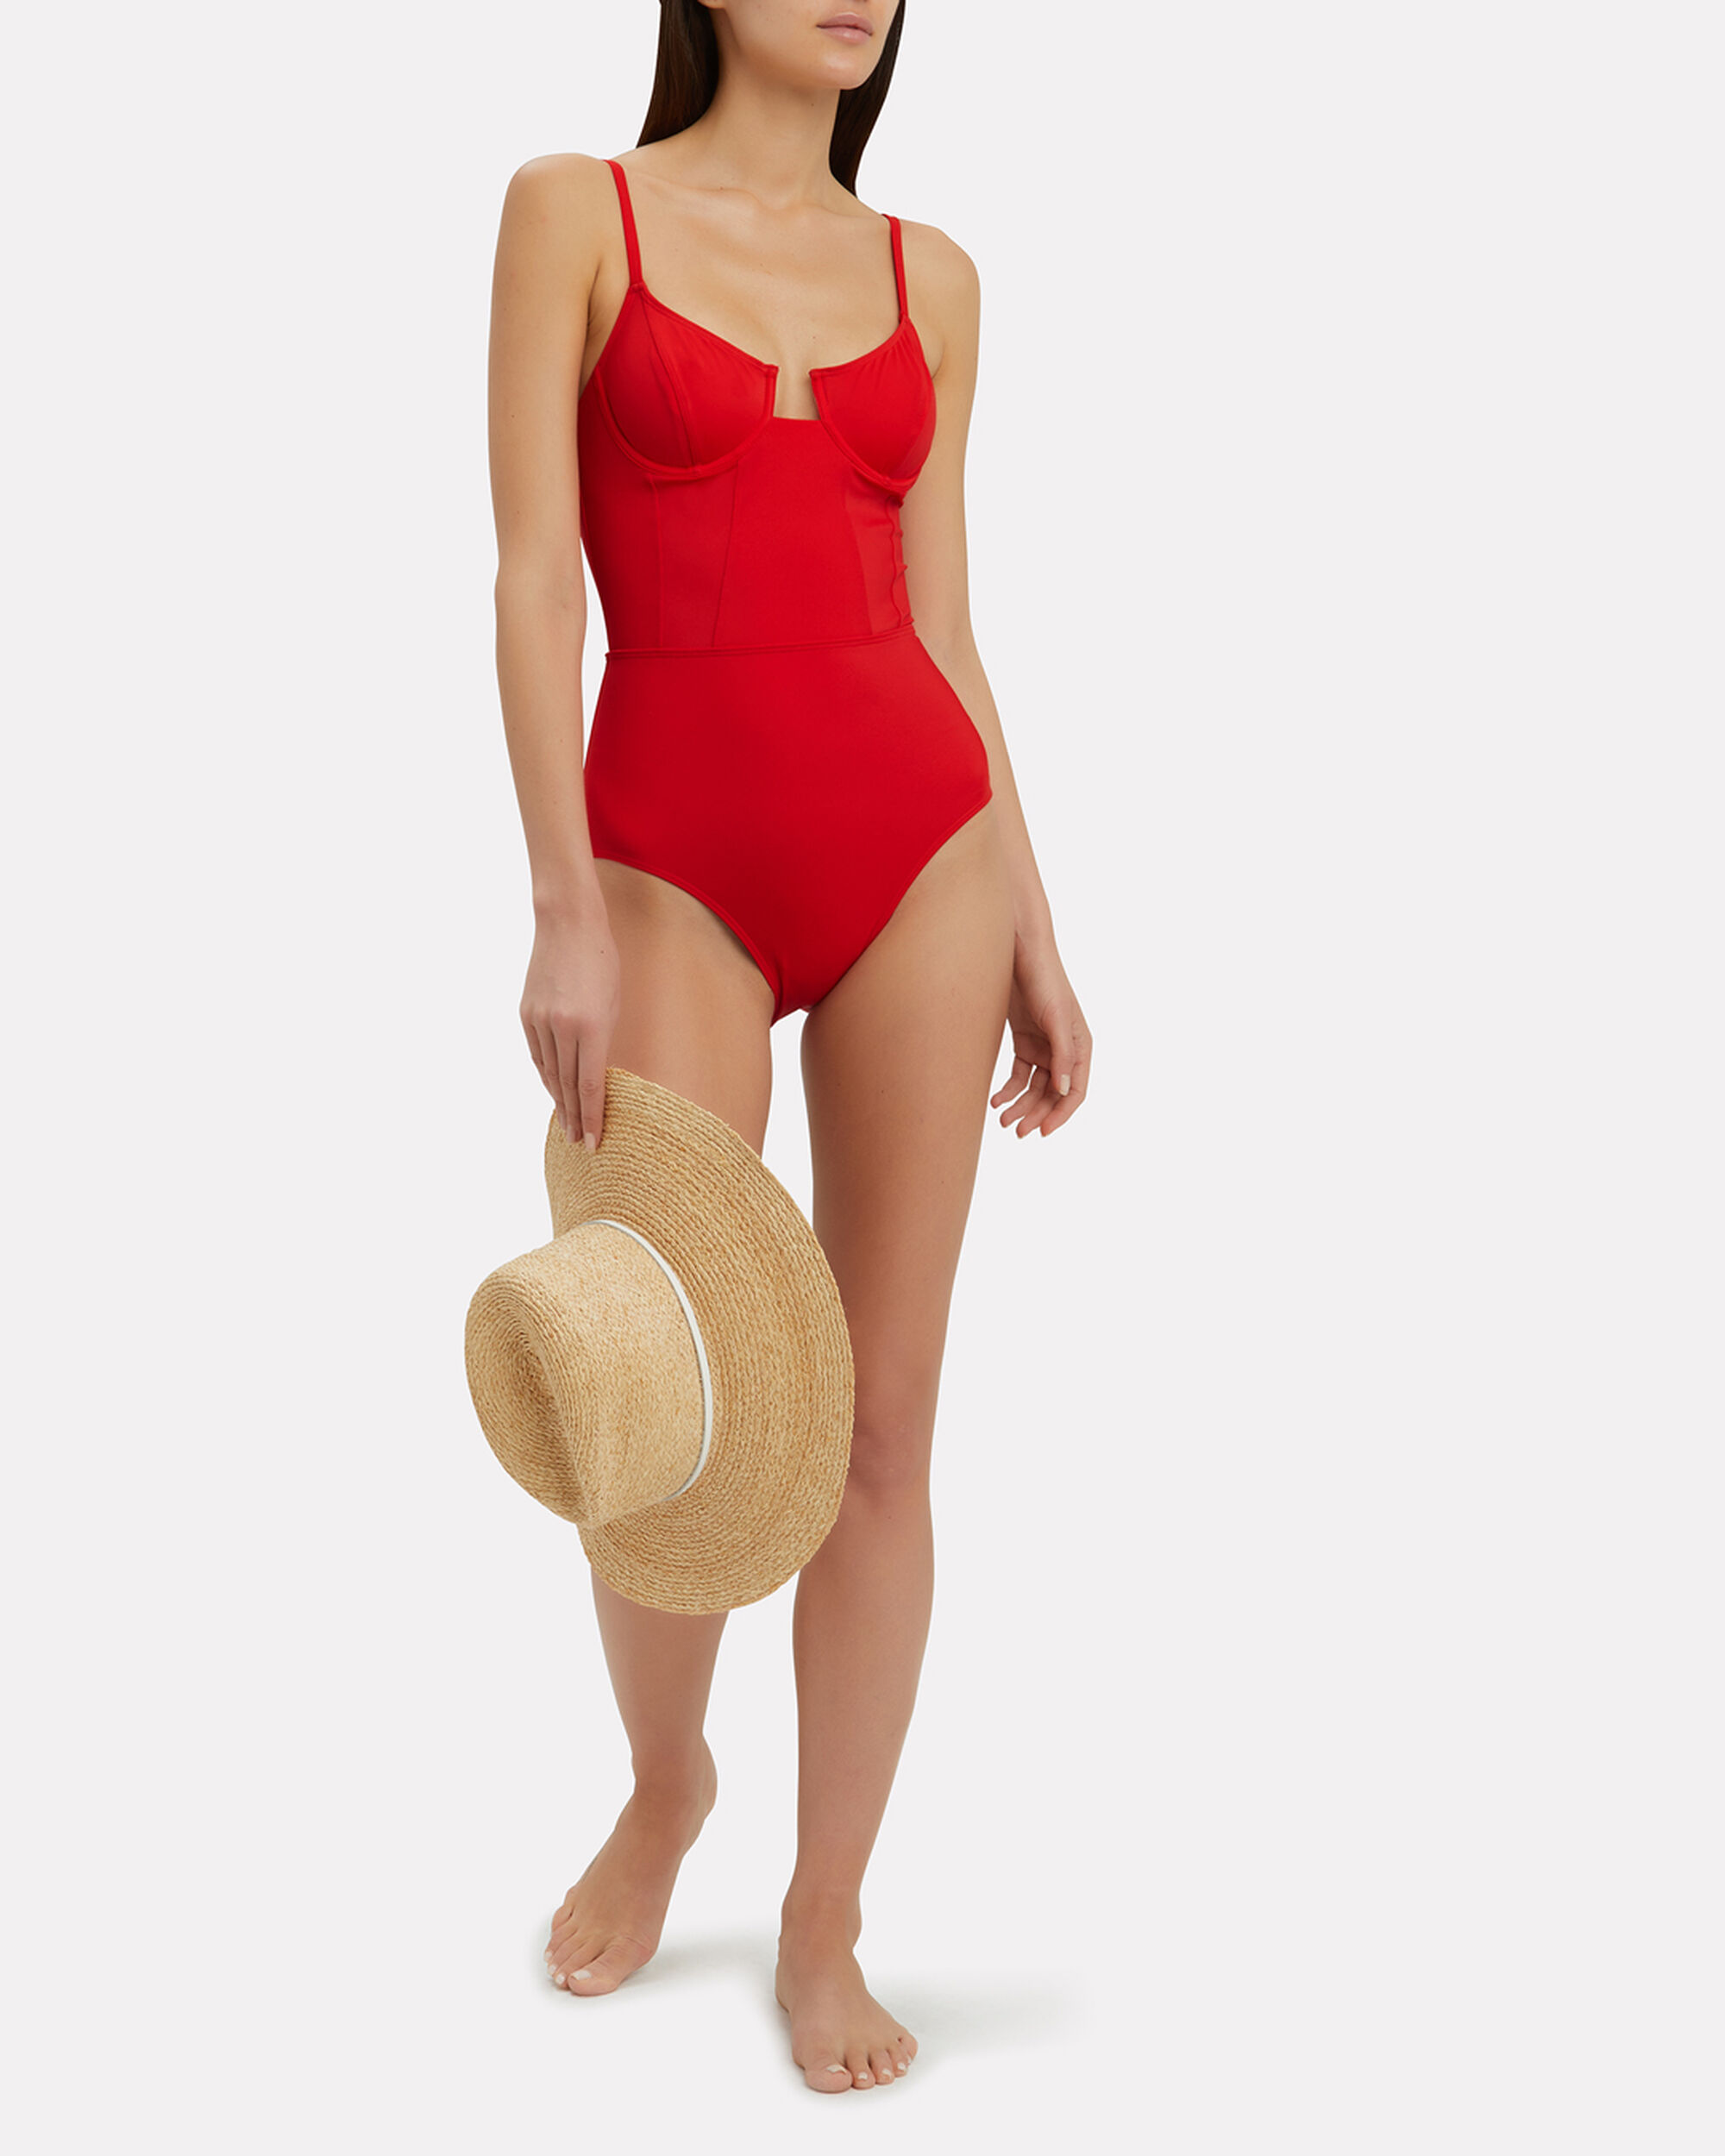 Hollywood One Piece Swimsuit, RED, hi-res